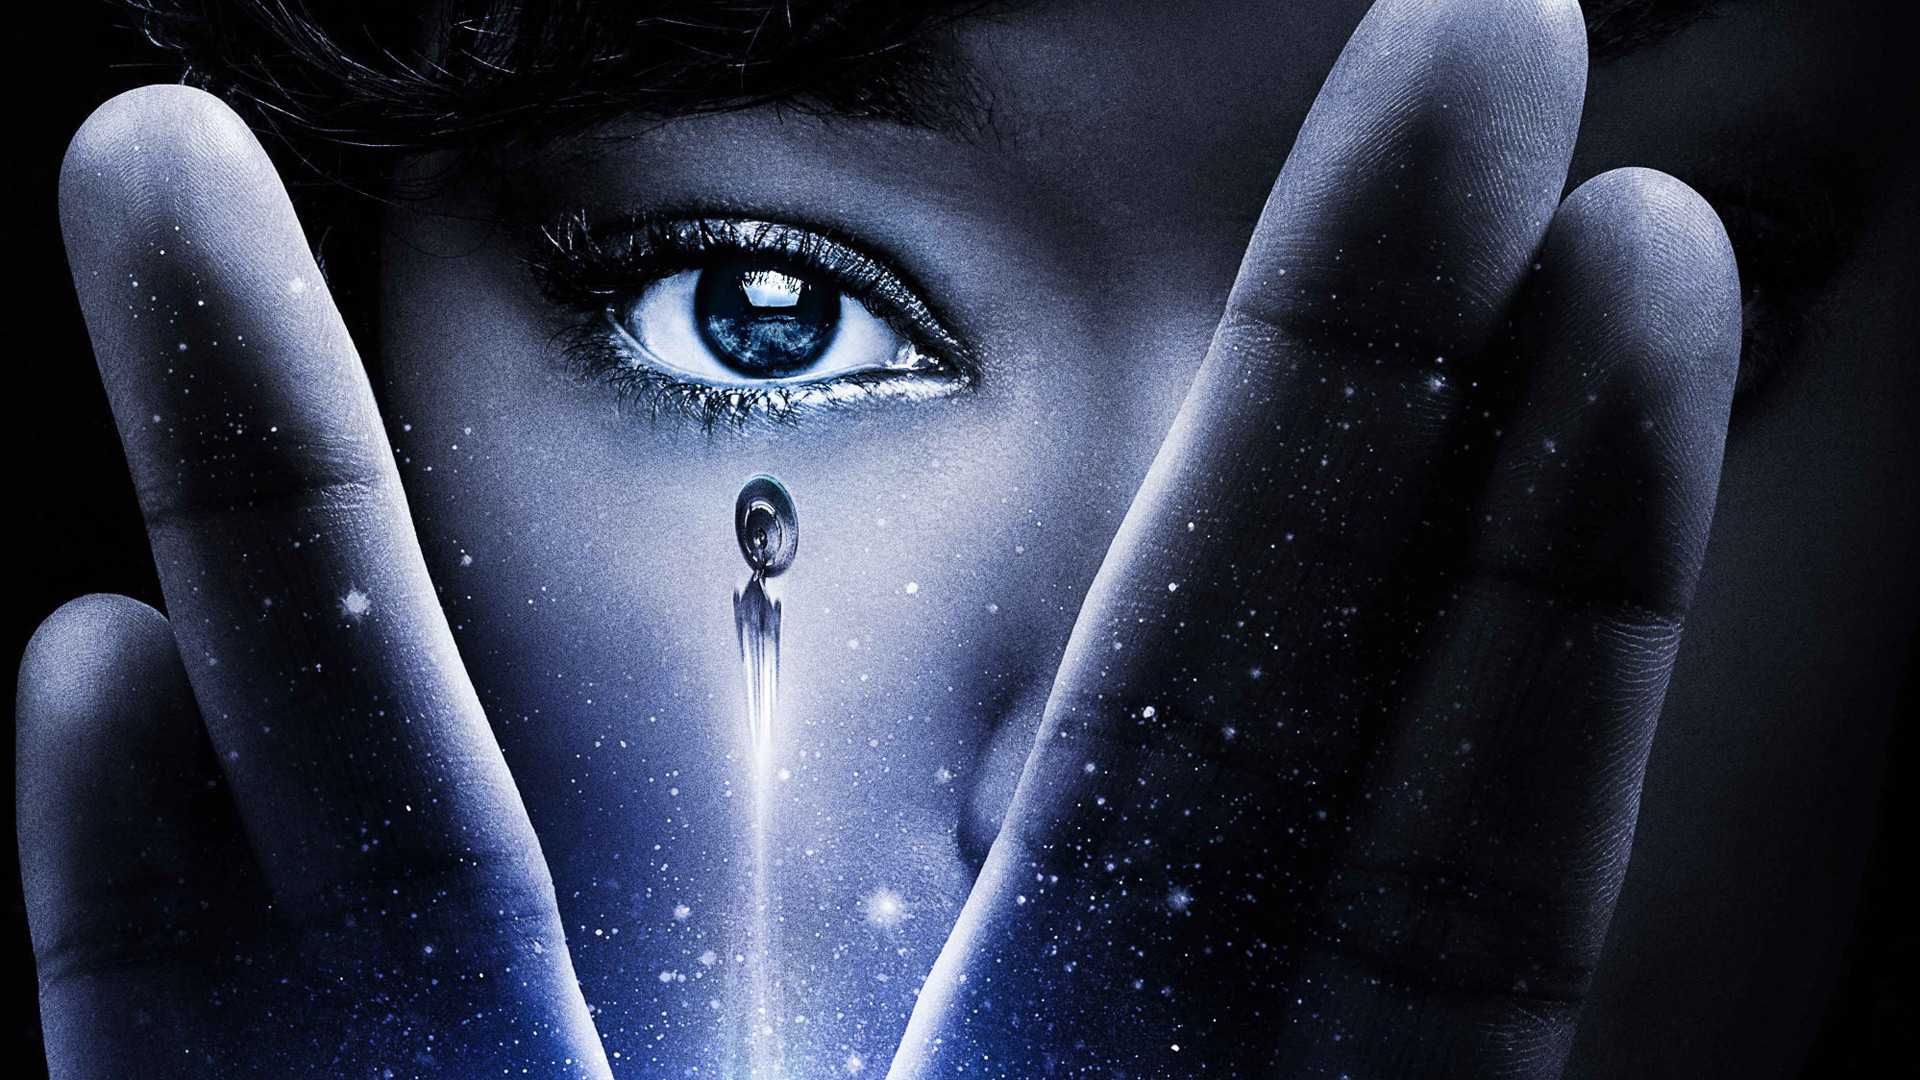 Star Trek: Discovery season 1 episode 5 watch online